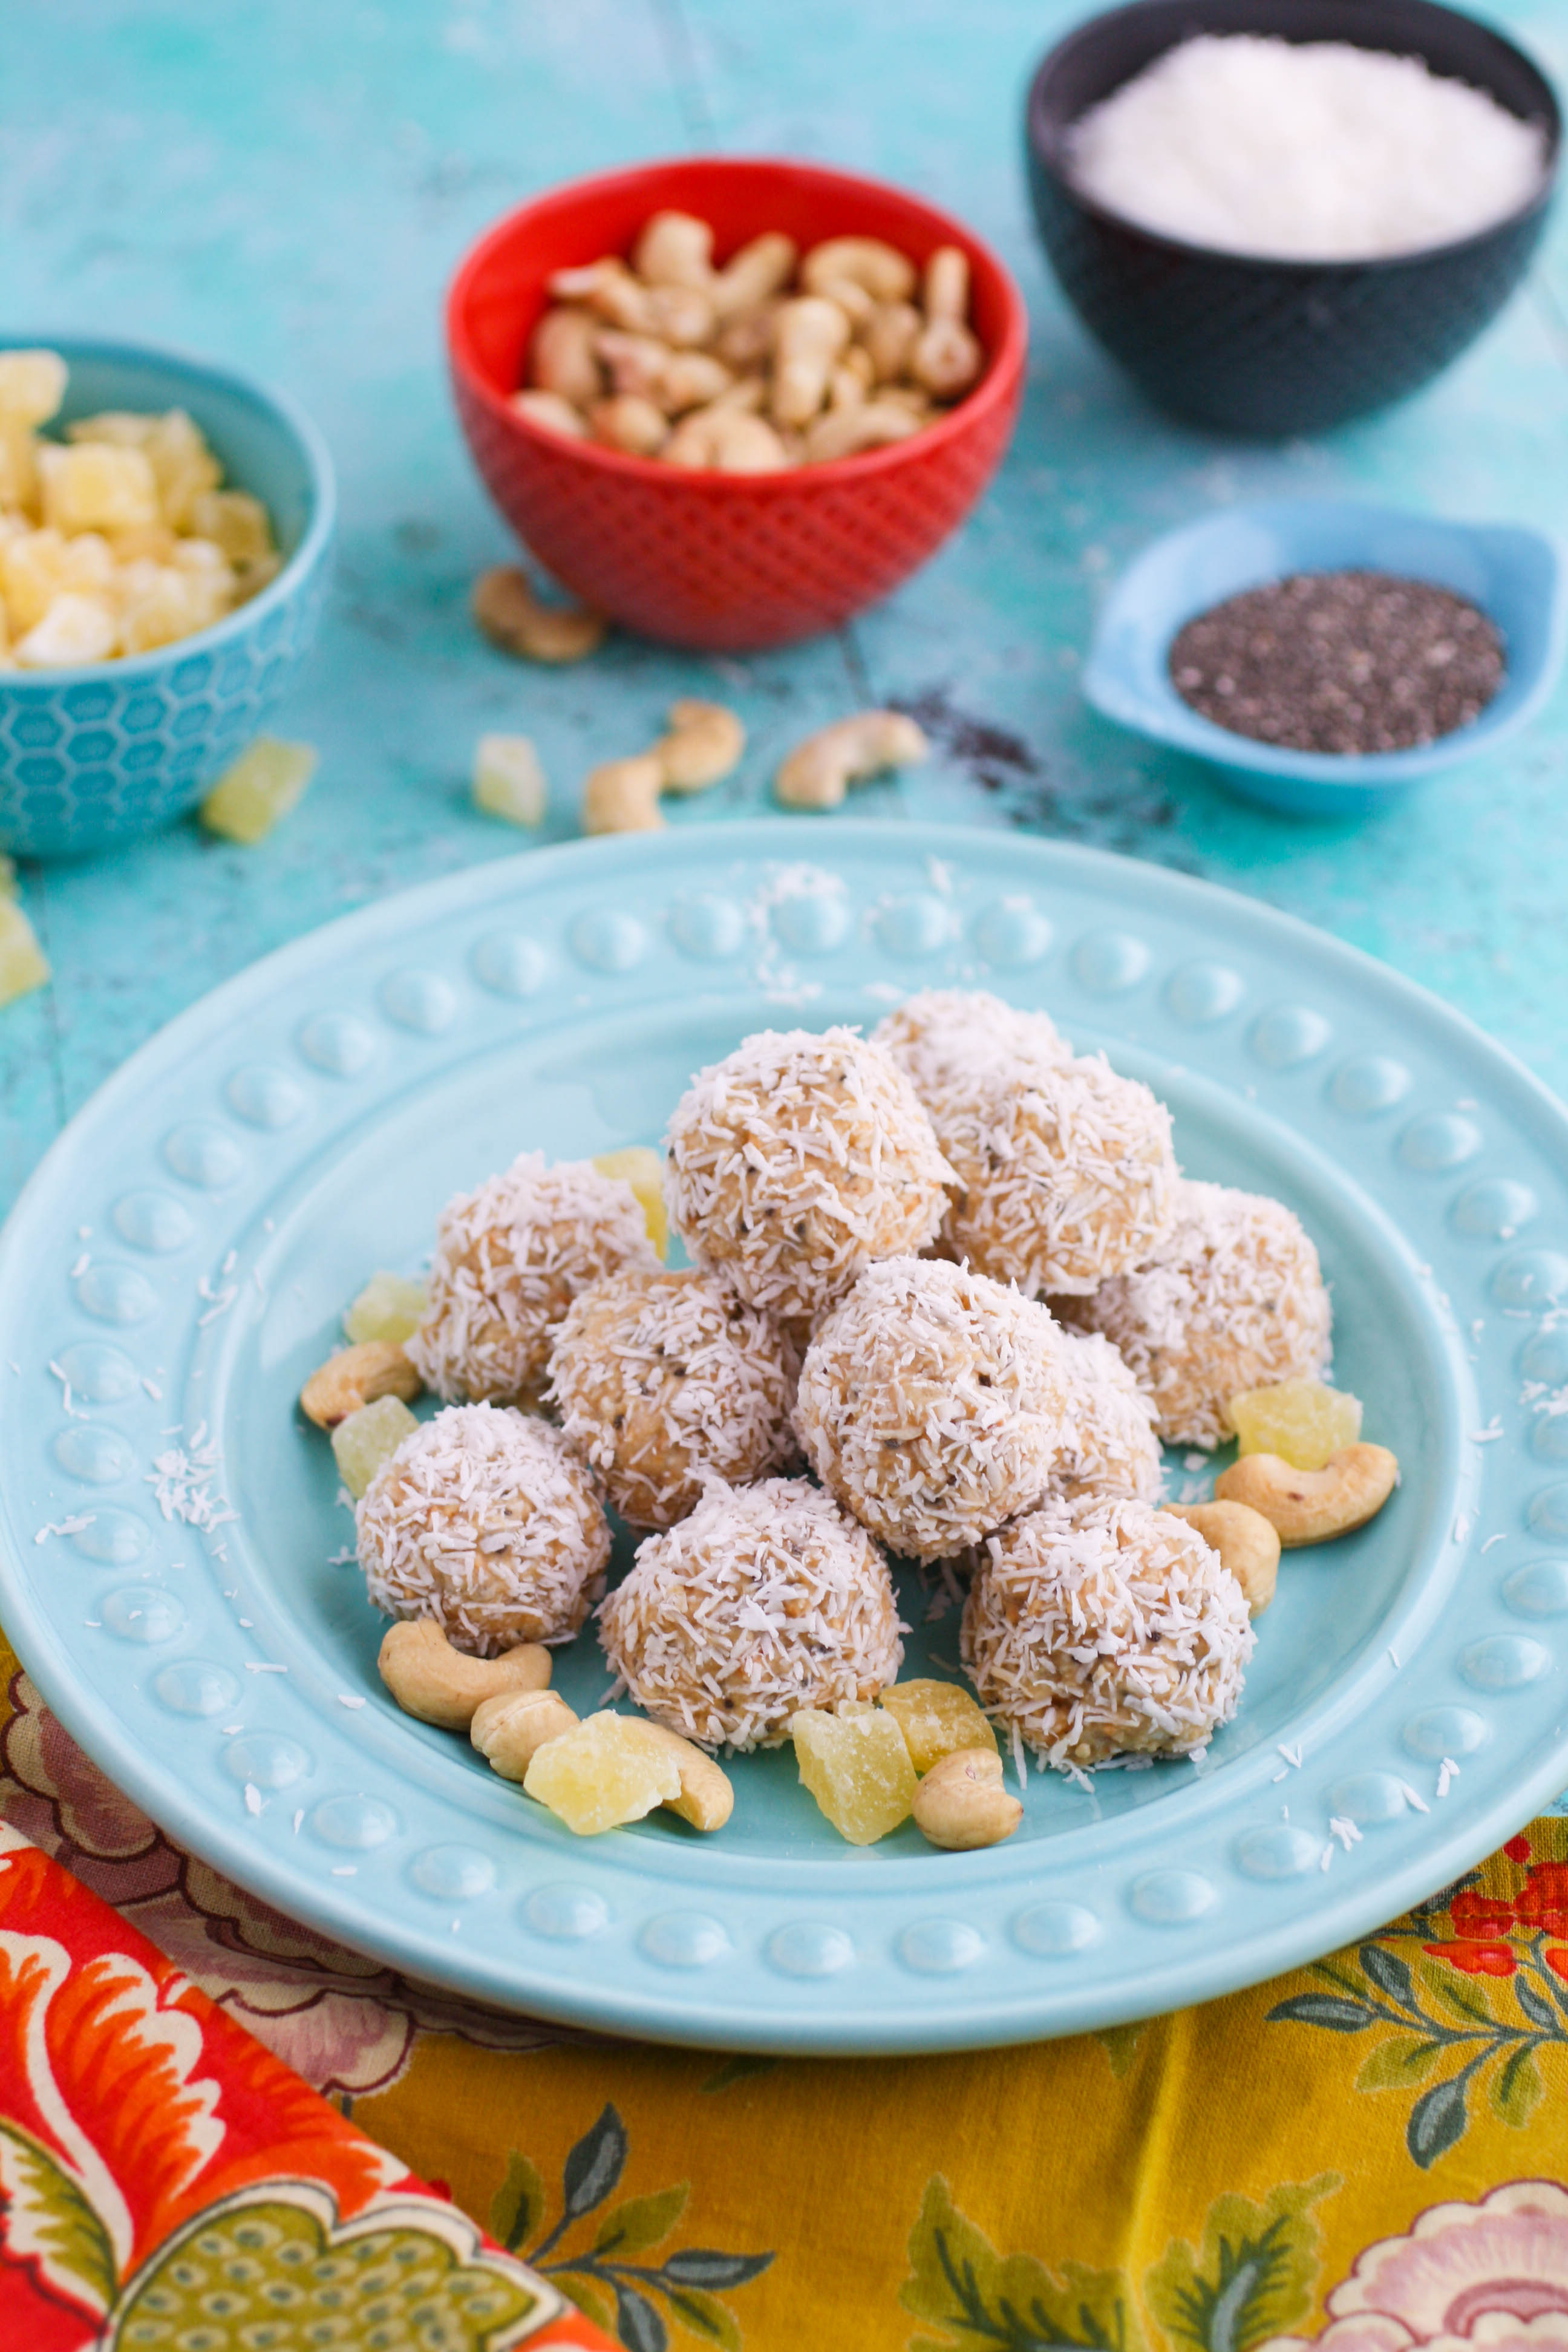 No bake coconut, cashew, and pineapple energy bites are super tasty and make a great snack. You'll love these no bake bites for a great snack option!